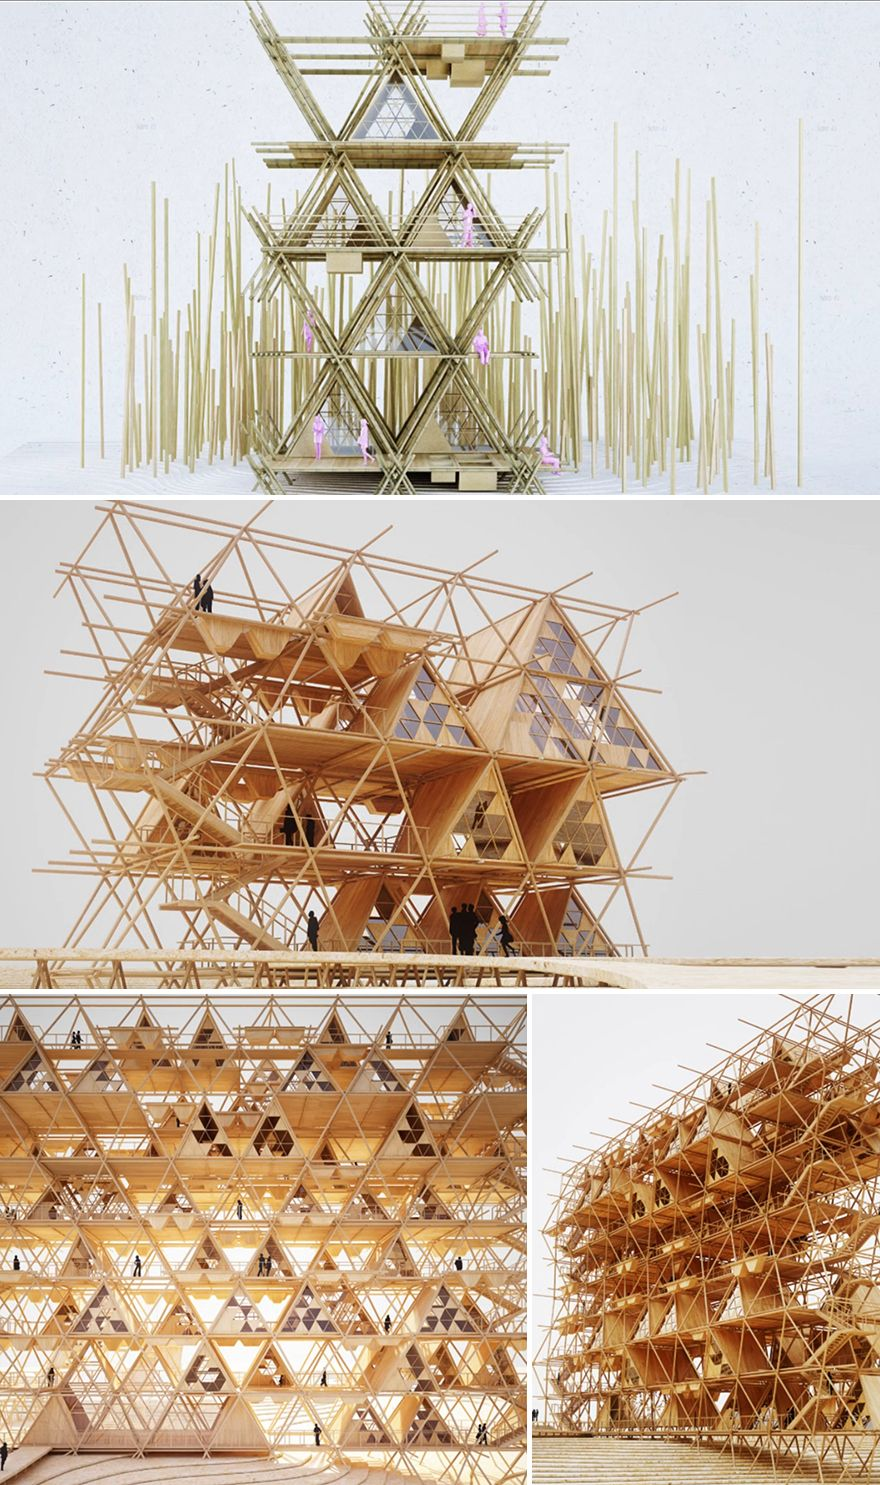 Penda's Fastener-Free, Re-usable Bamboo Structural System - Core77